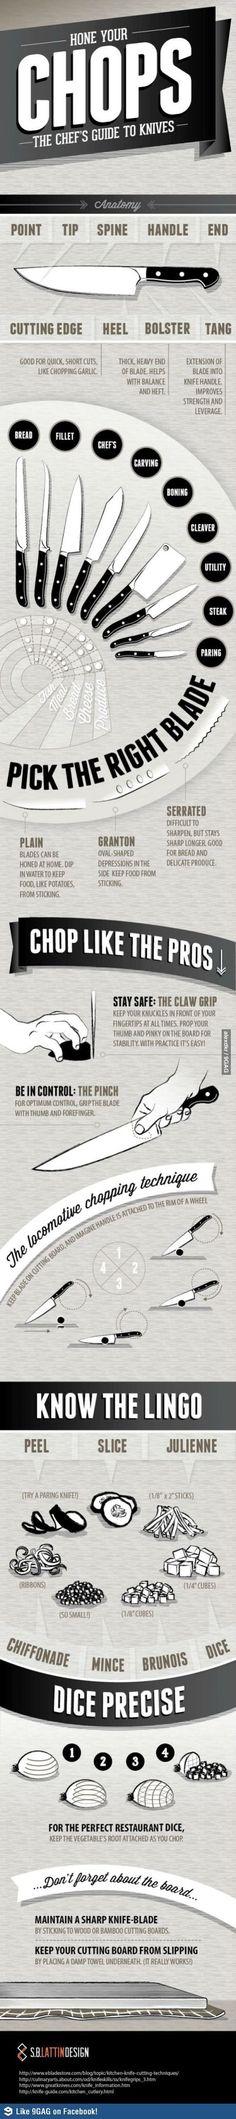 "Culinary Tips. Try out the ""Areo Knife"" that cuts anything & everything."